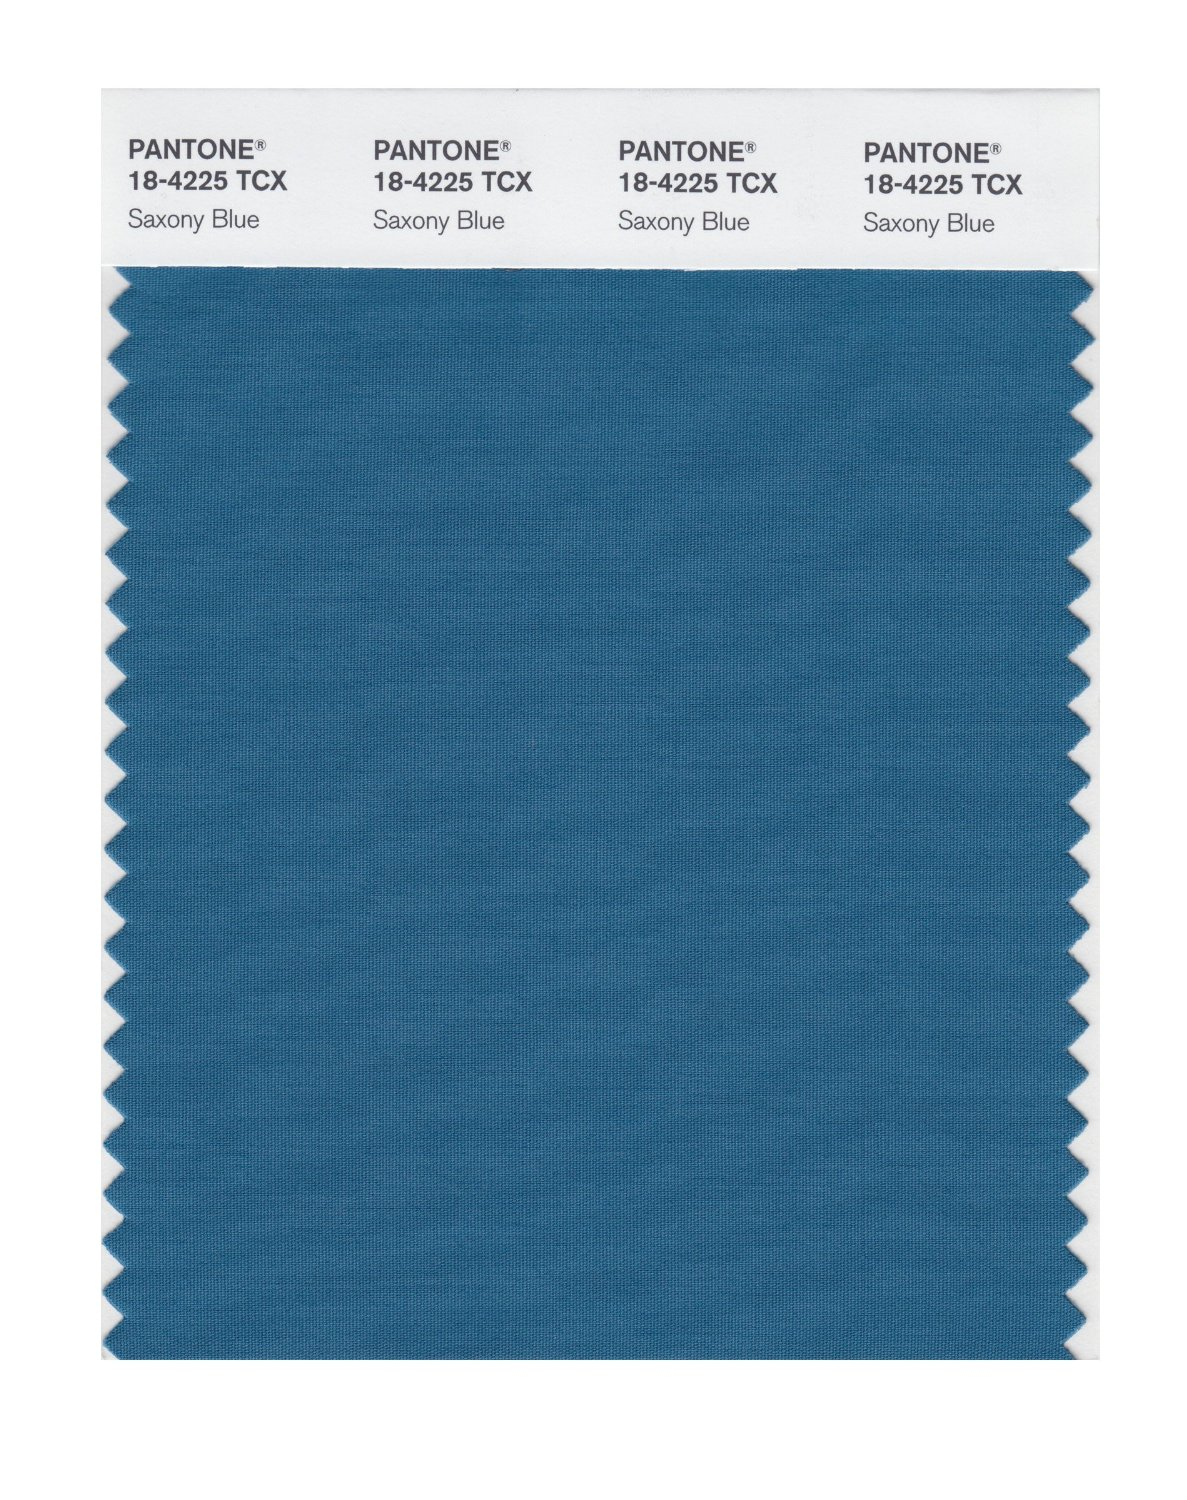 Pantone Smart Swatch 18-4225 Saxony Blue